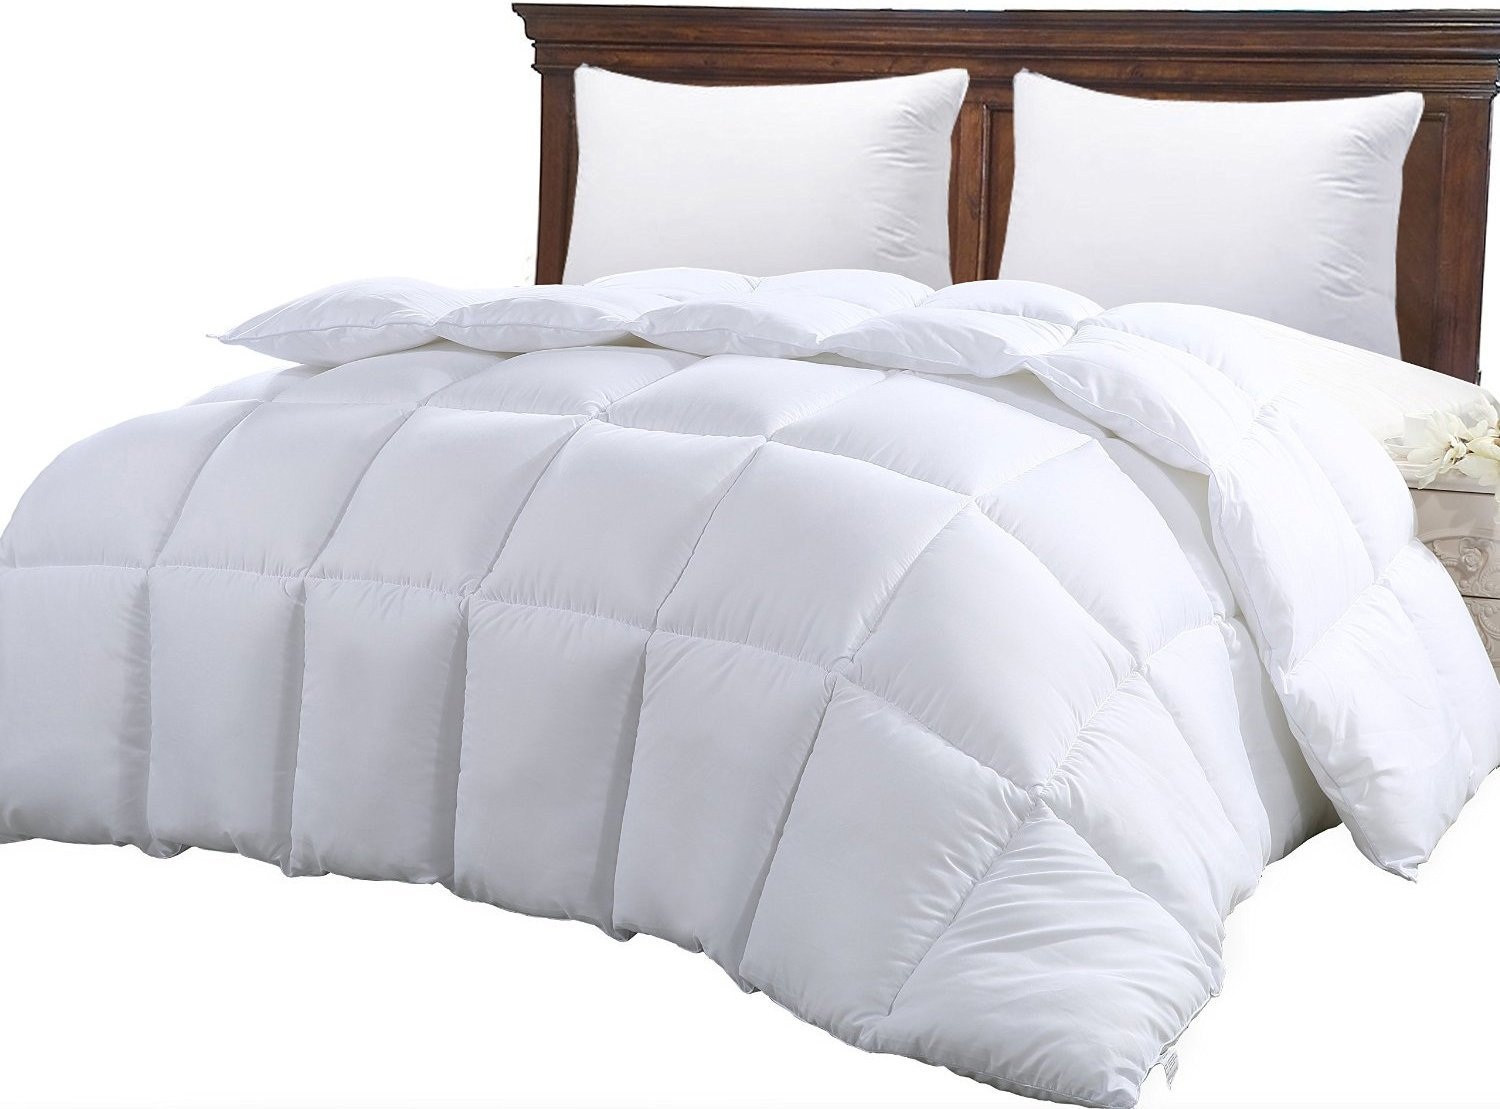 a set vs filling cover coverlet and to down duvet duvets bedding in best filled the quilts with between queen difference large of size which comforter how use comforters is same